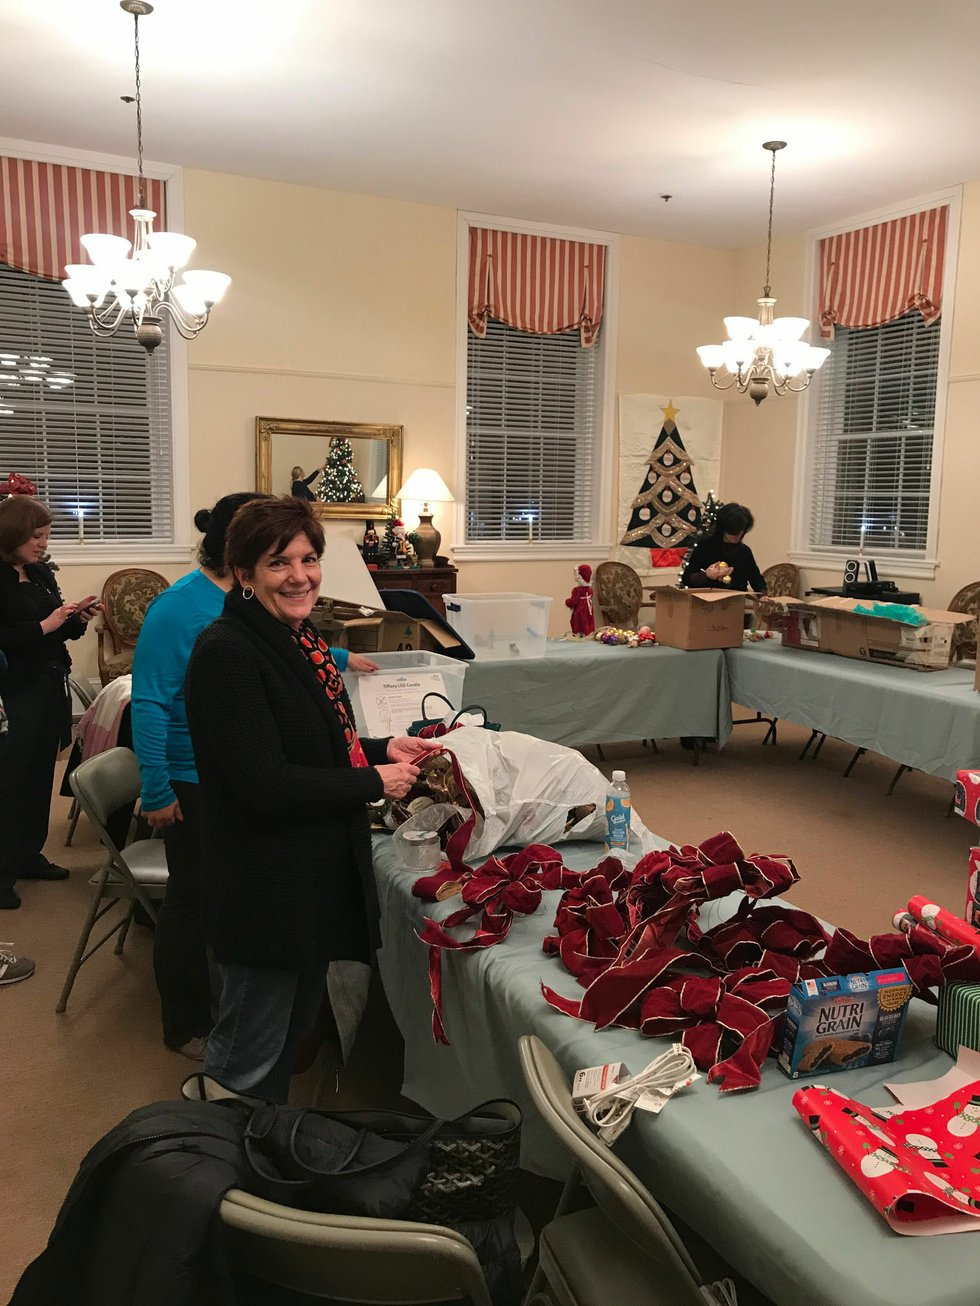 Volunteers, Designers Decorate Campagna Center For Scottish Walk Weekend  Events   Alexandria Living Magazine